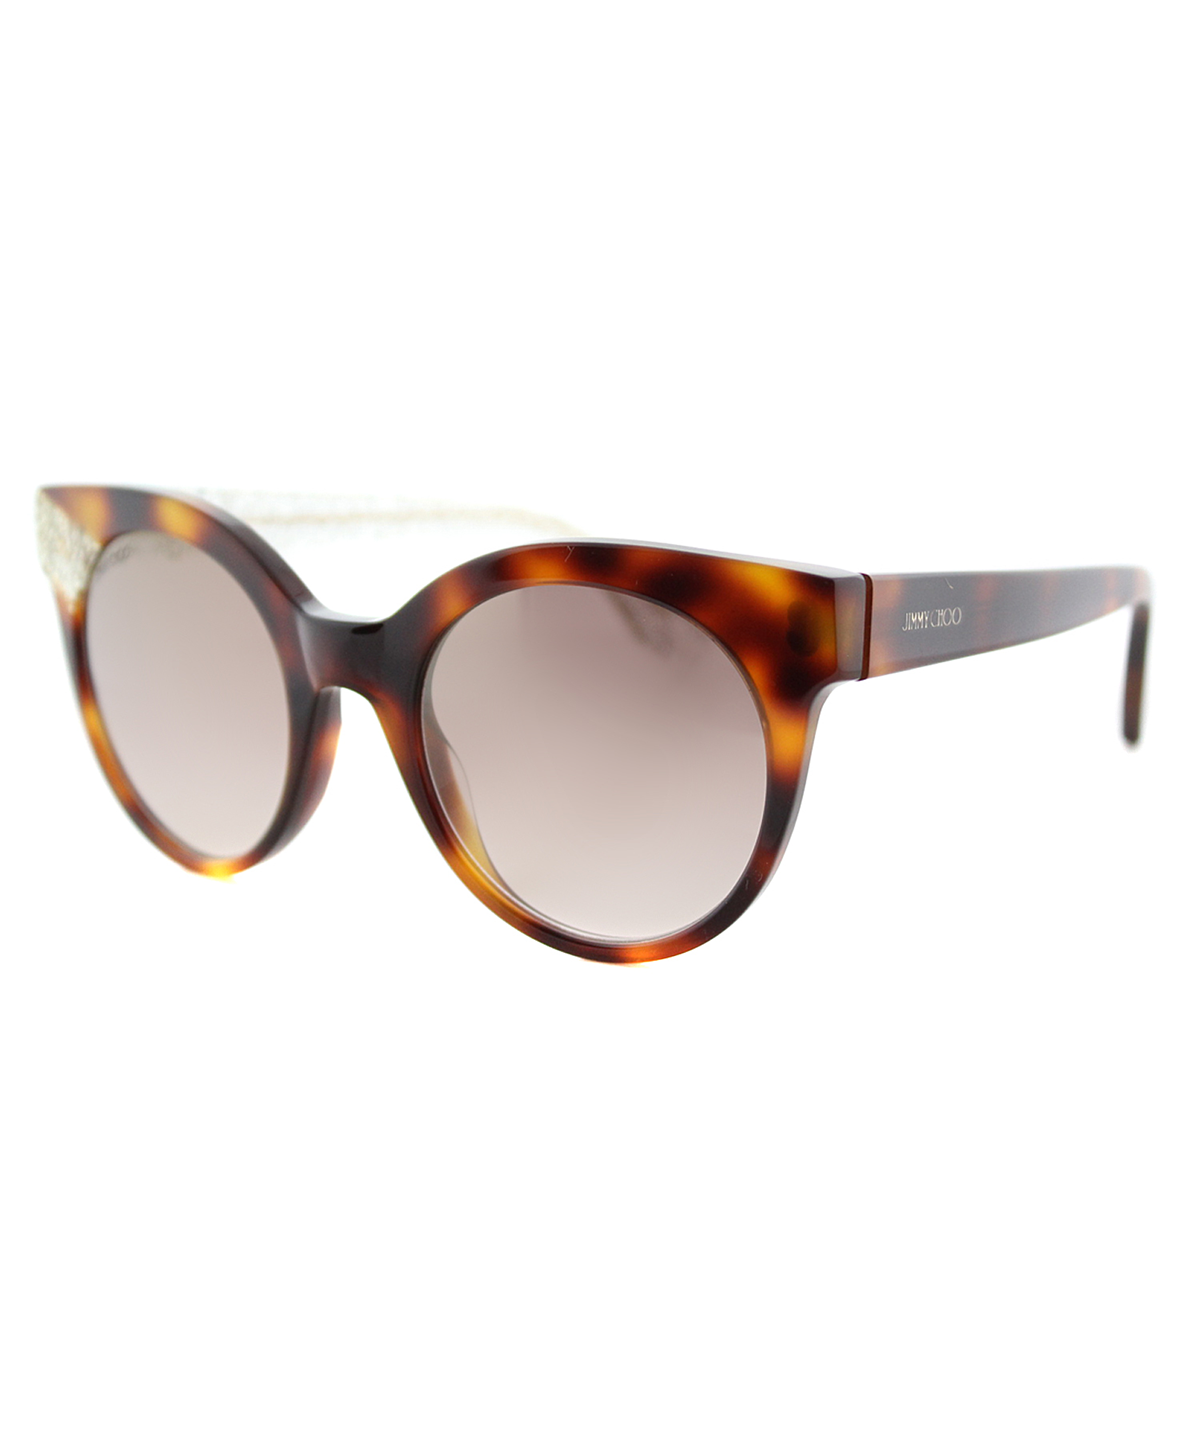 Jimmy Choo Cat-eye Plastic Sunglasses In Havana